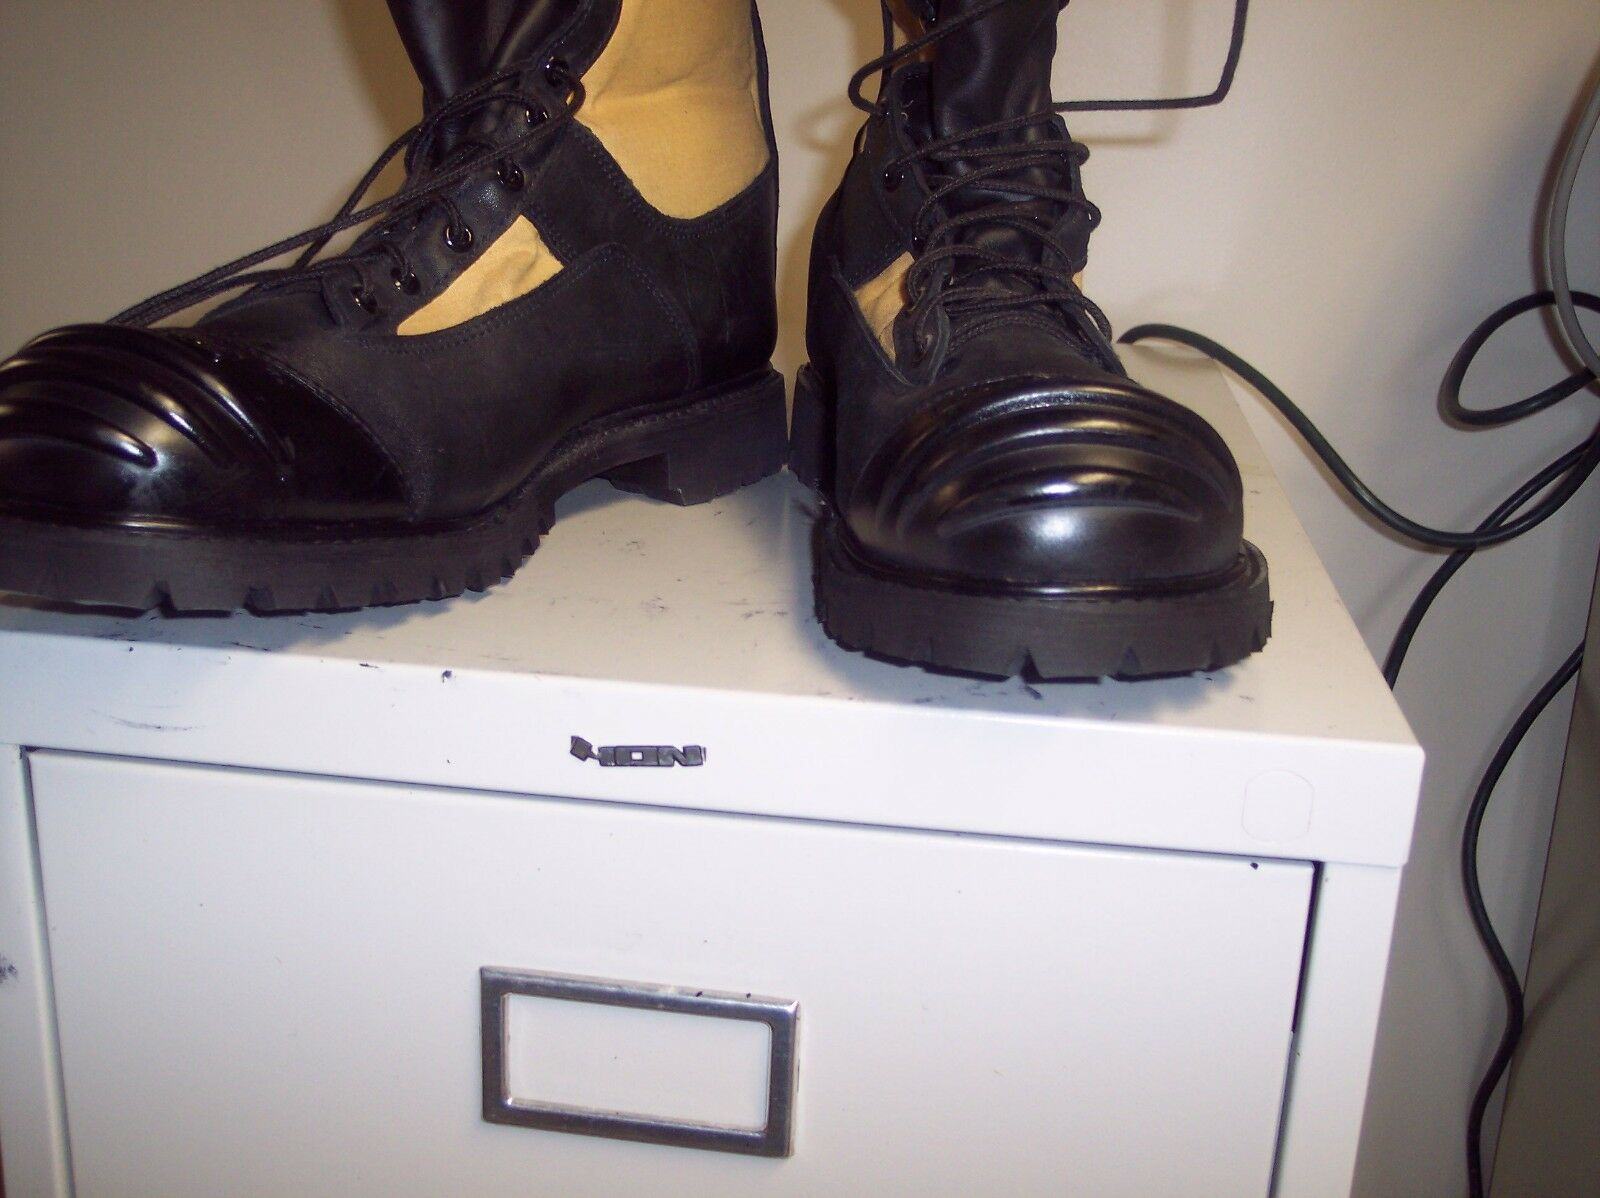 TOTAL FIRE STYLE 6000 FIRE y rescate GROUP botas EE Made In Usa